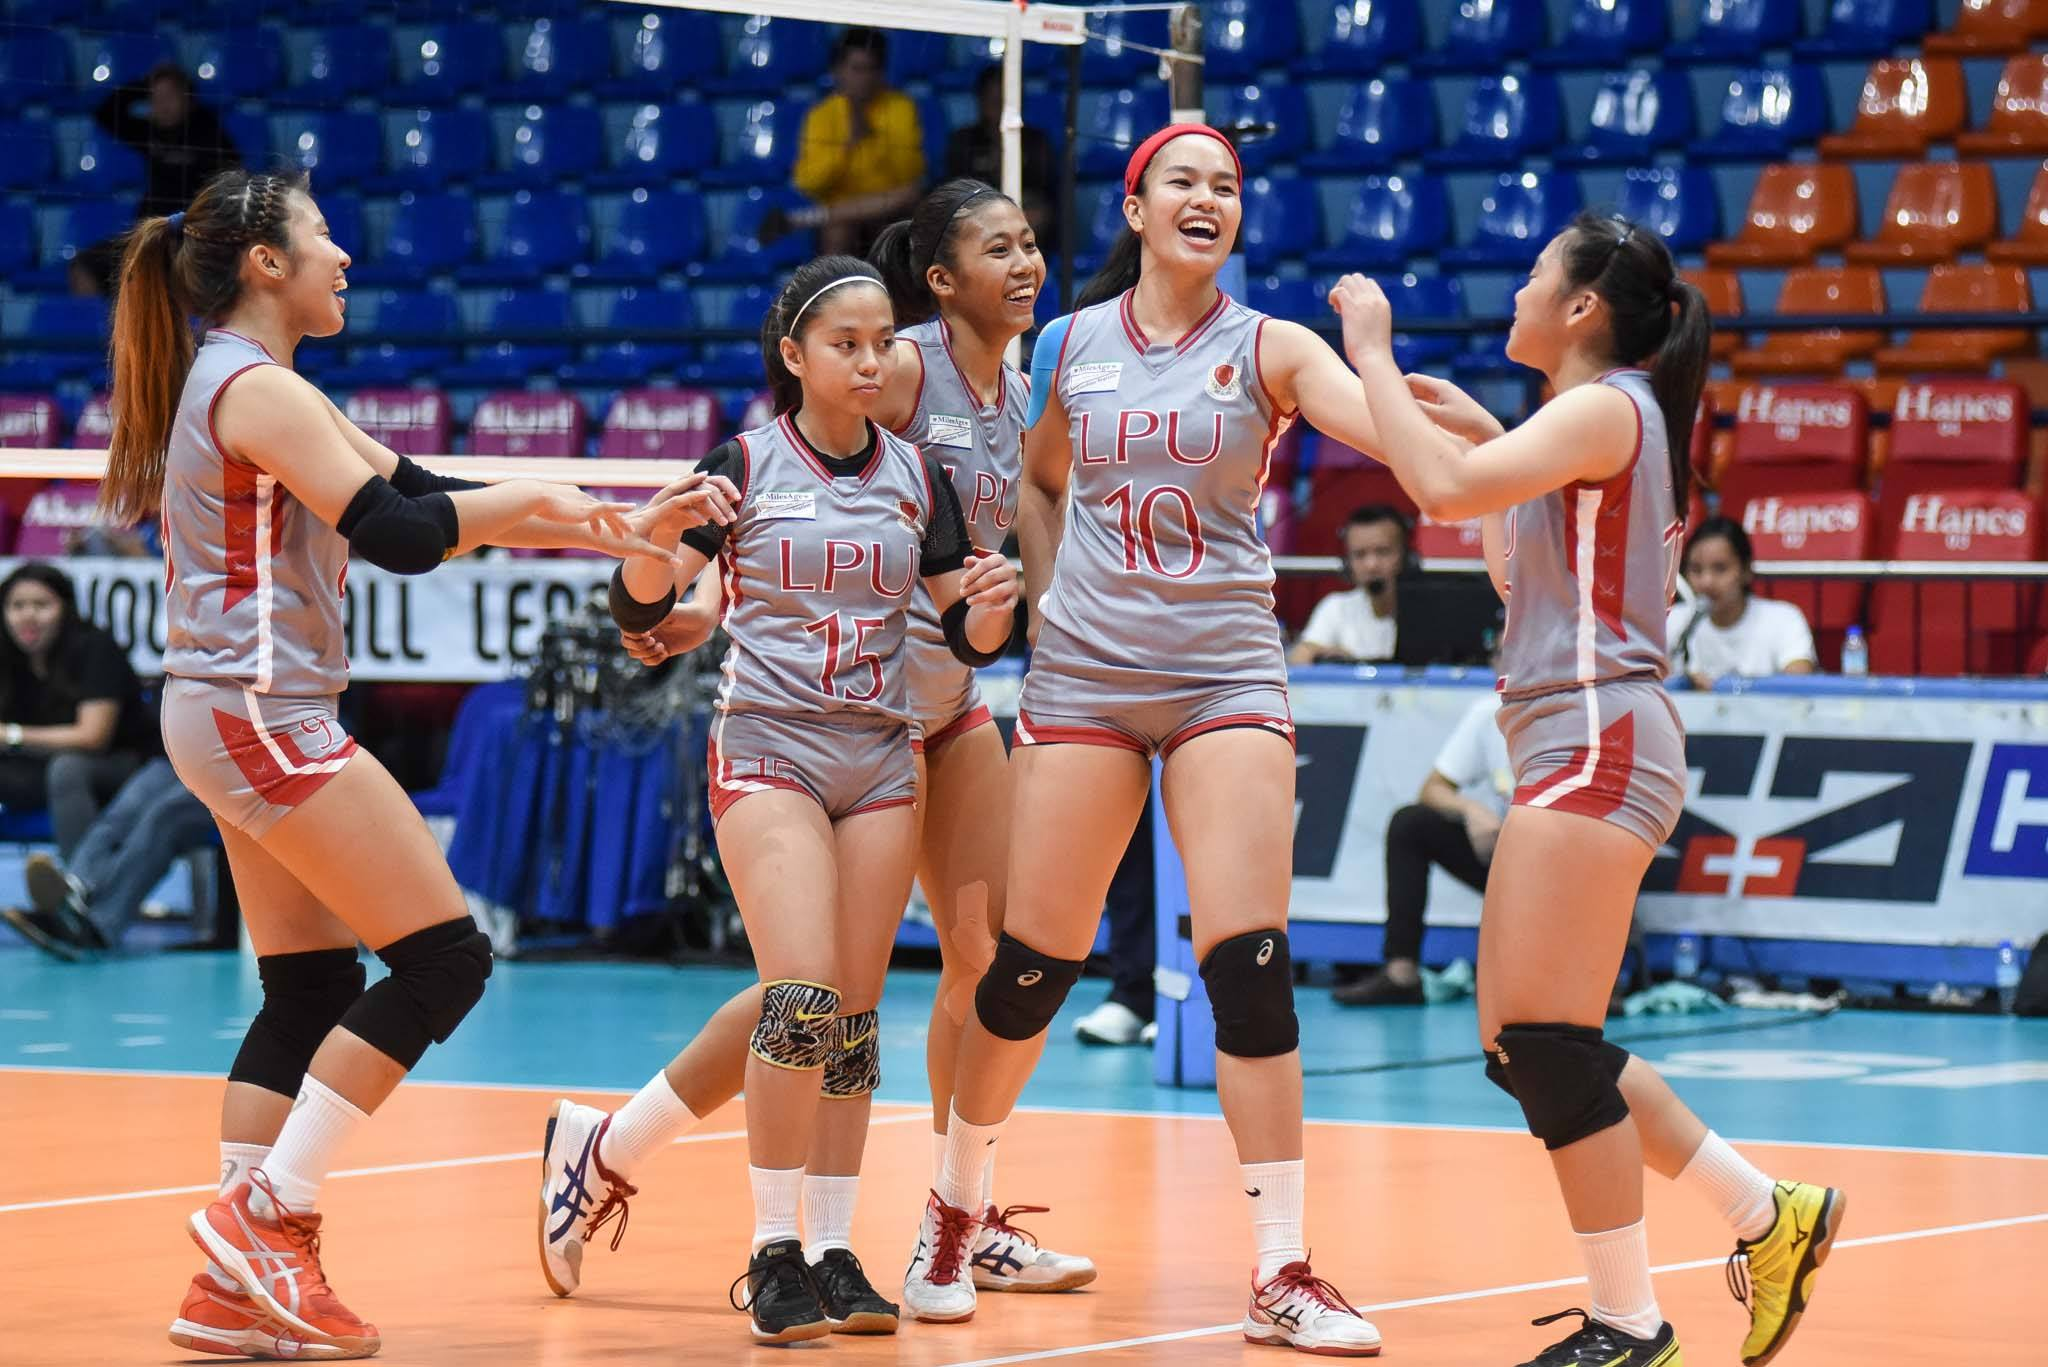 Tiebreaker Times Doguna, Rafael lead Lyceum whipping of TIP for first win LPU News PVL Volleyball  Wielyn Margallo TIP Lady Engineers Lyceum Women's Volleyball Joan Daguna Emil Lontoc Boy Paril Alexandra Rafael 2019 PVL Season 2019 PVL Collegiate Conference